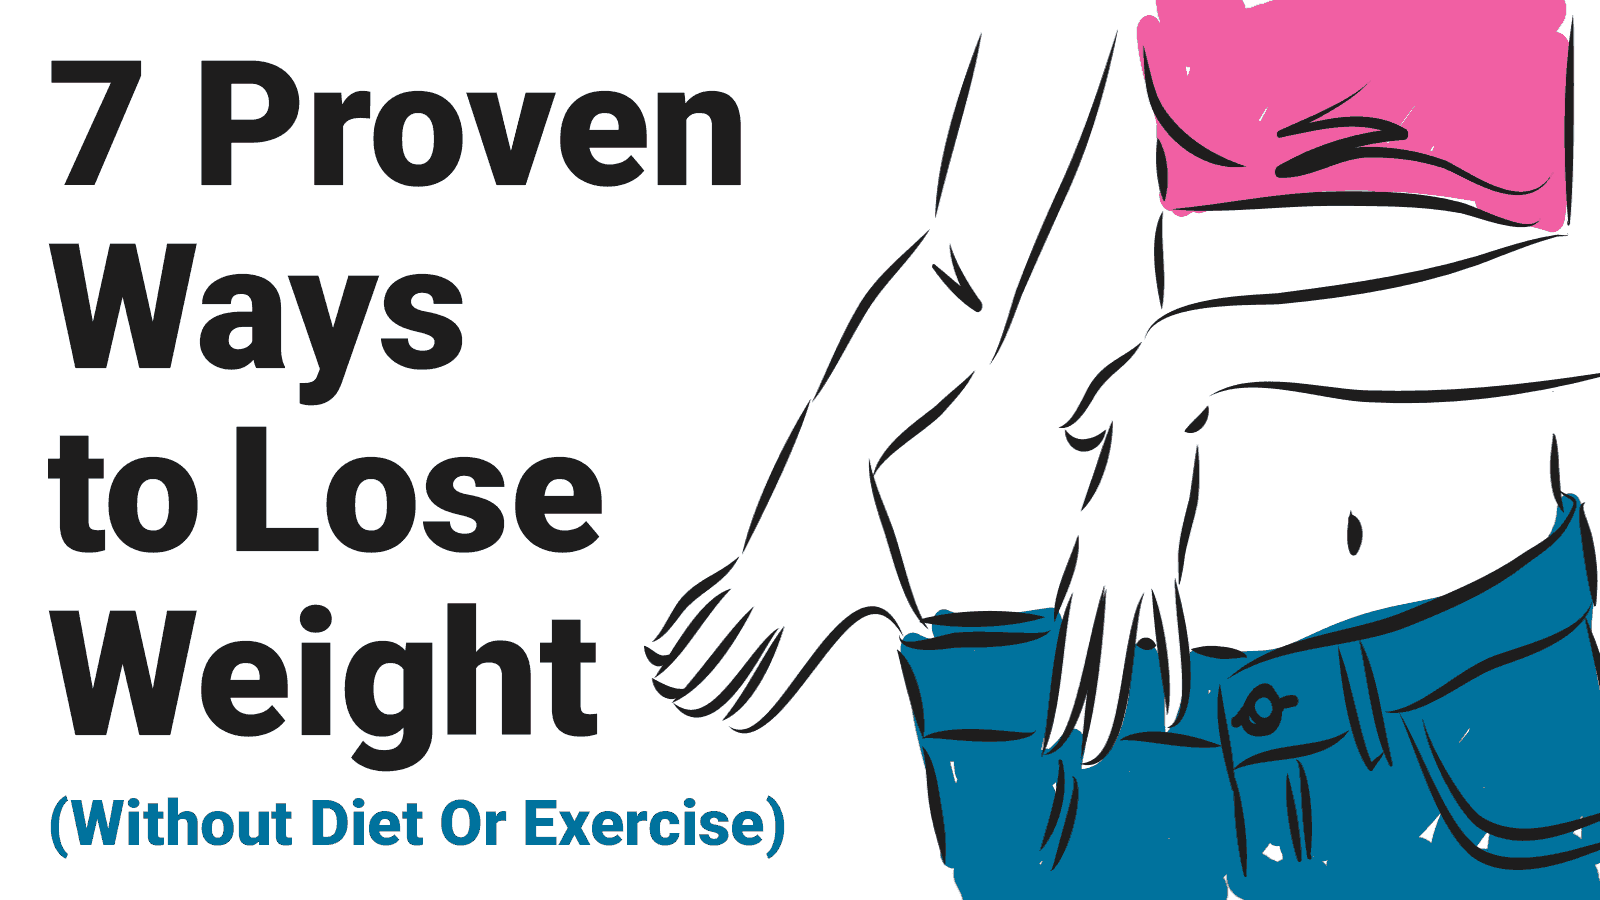 7 Proven Ways To Lose Weight Without Diet Or Exercise